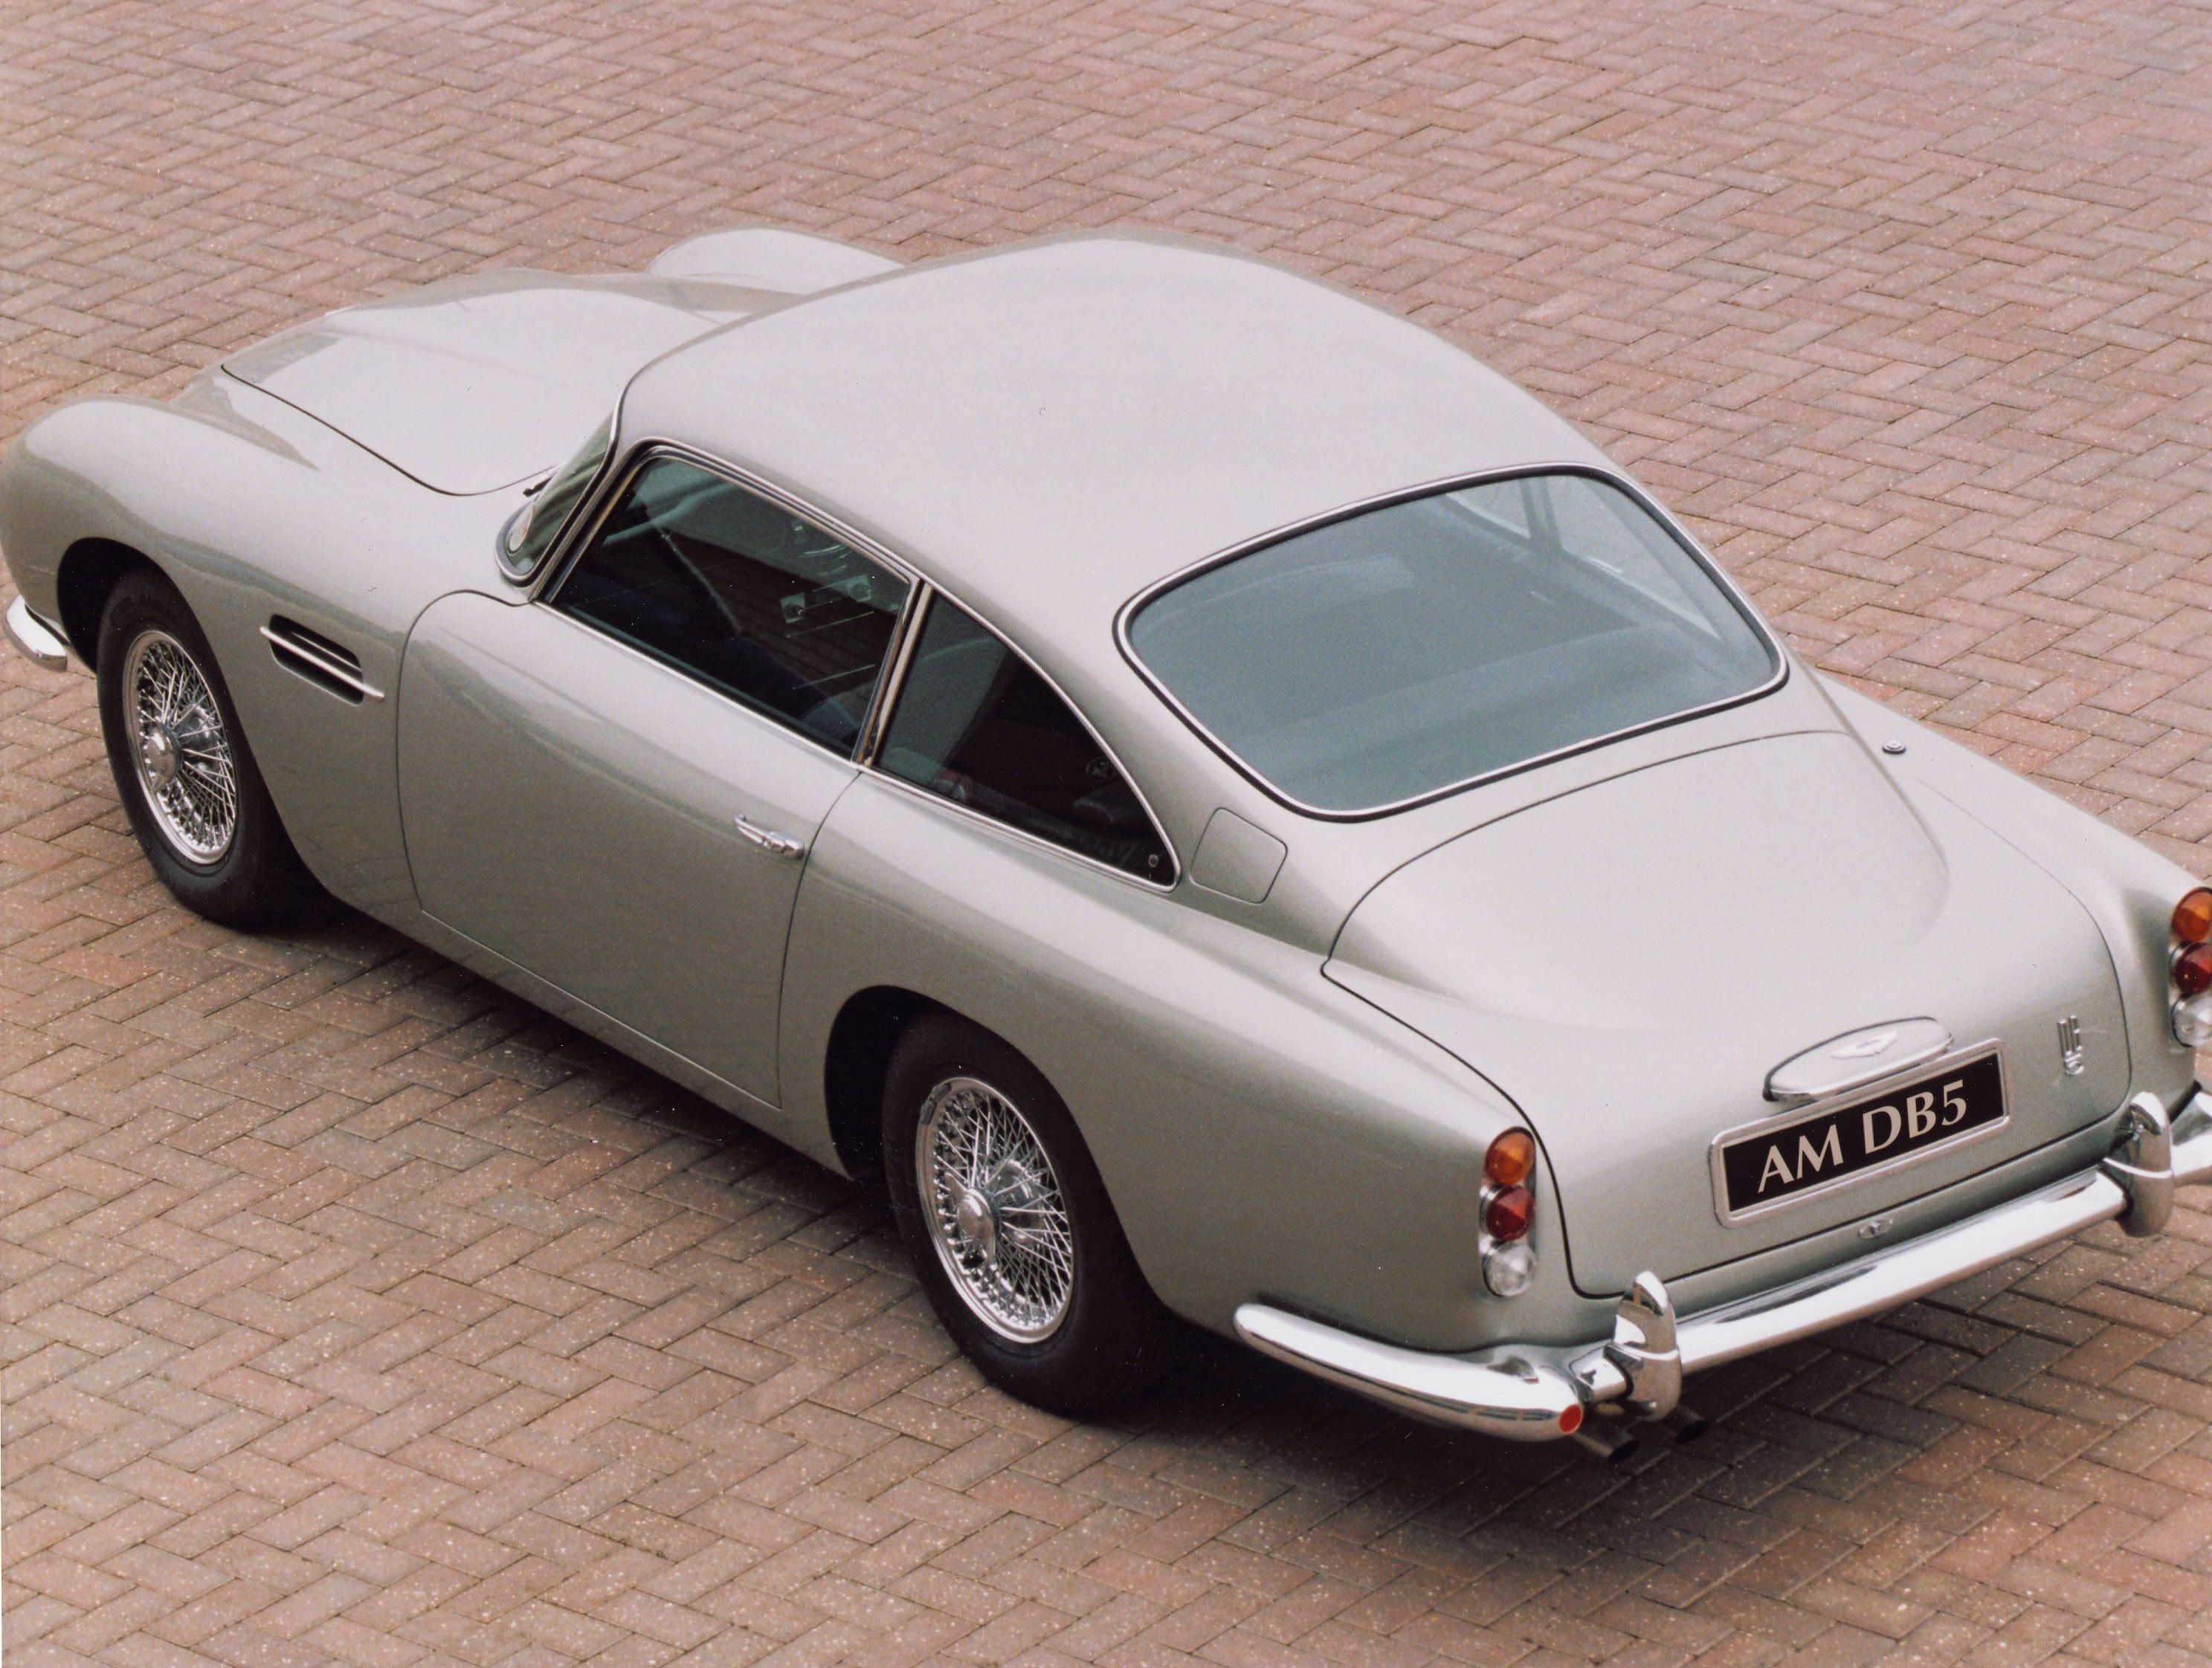 aston martin db5 1963 cartype. Black Bedroom Furniture Sets. Home Design Ideas